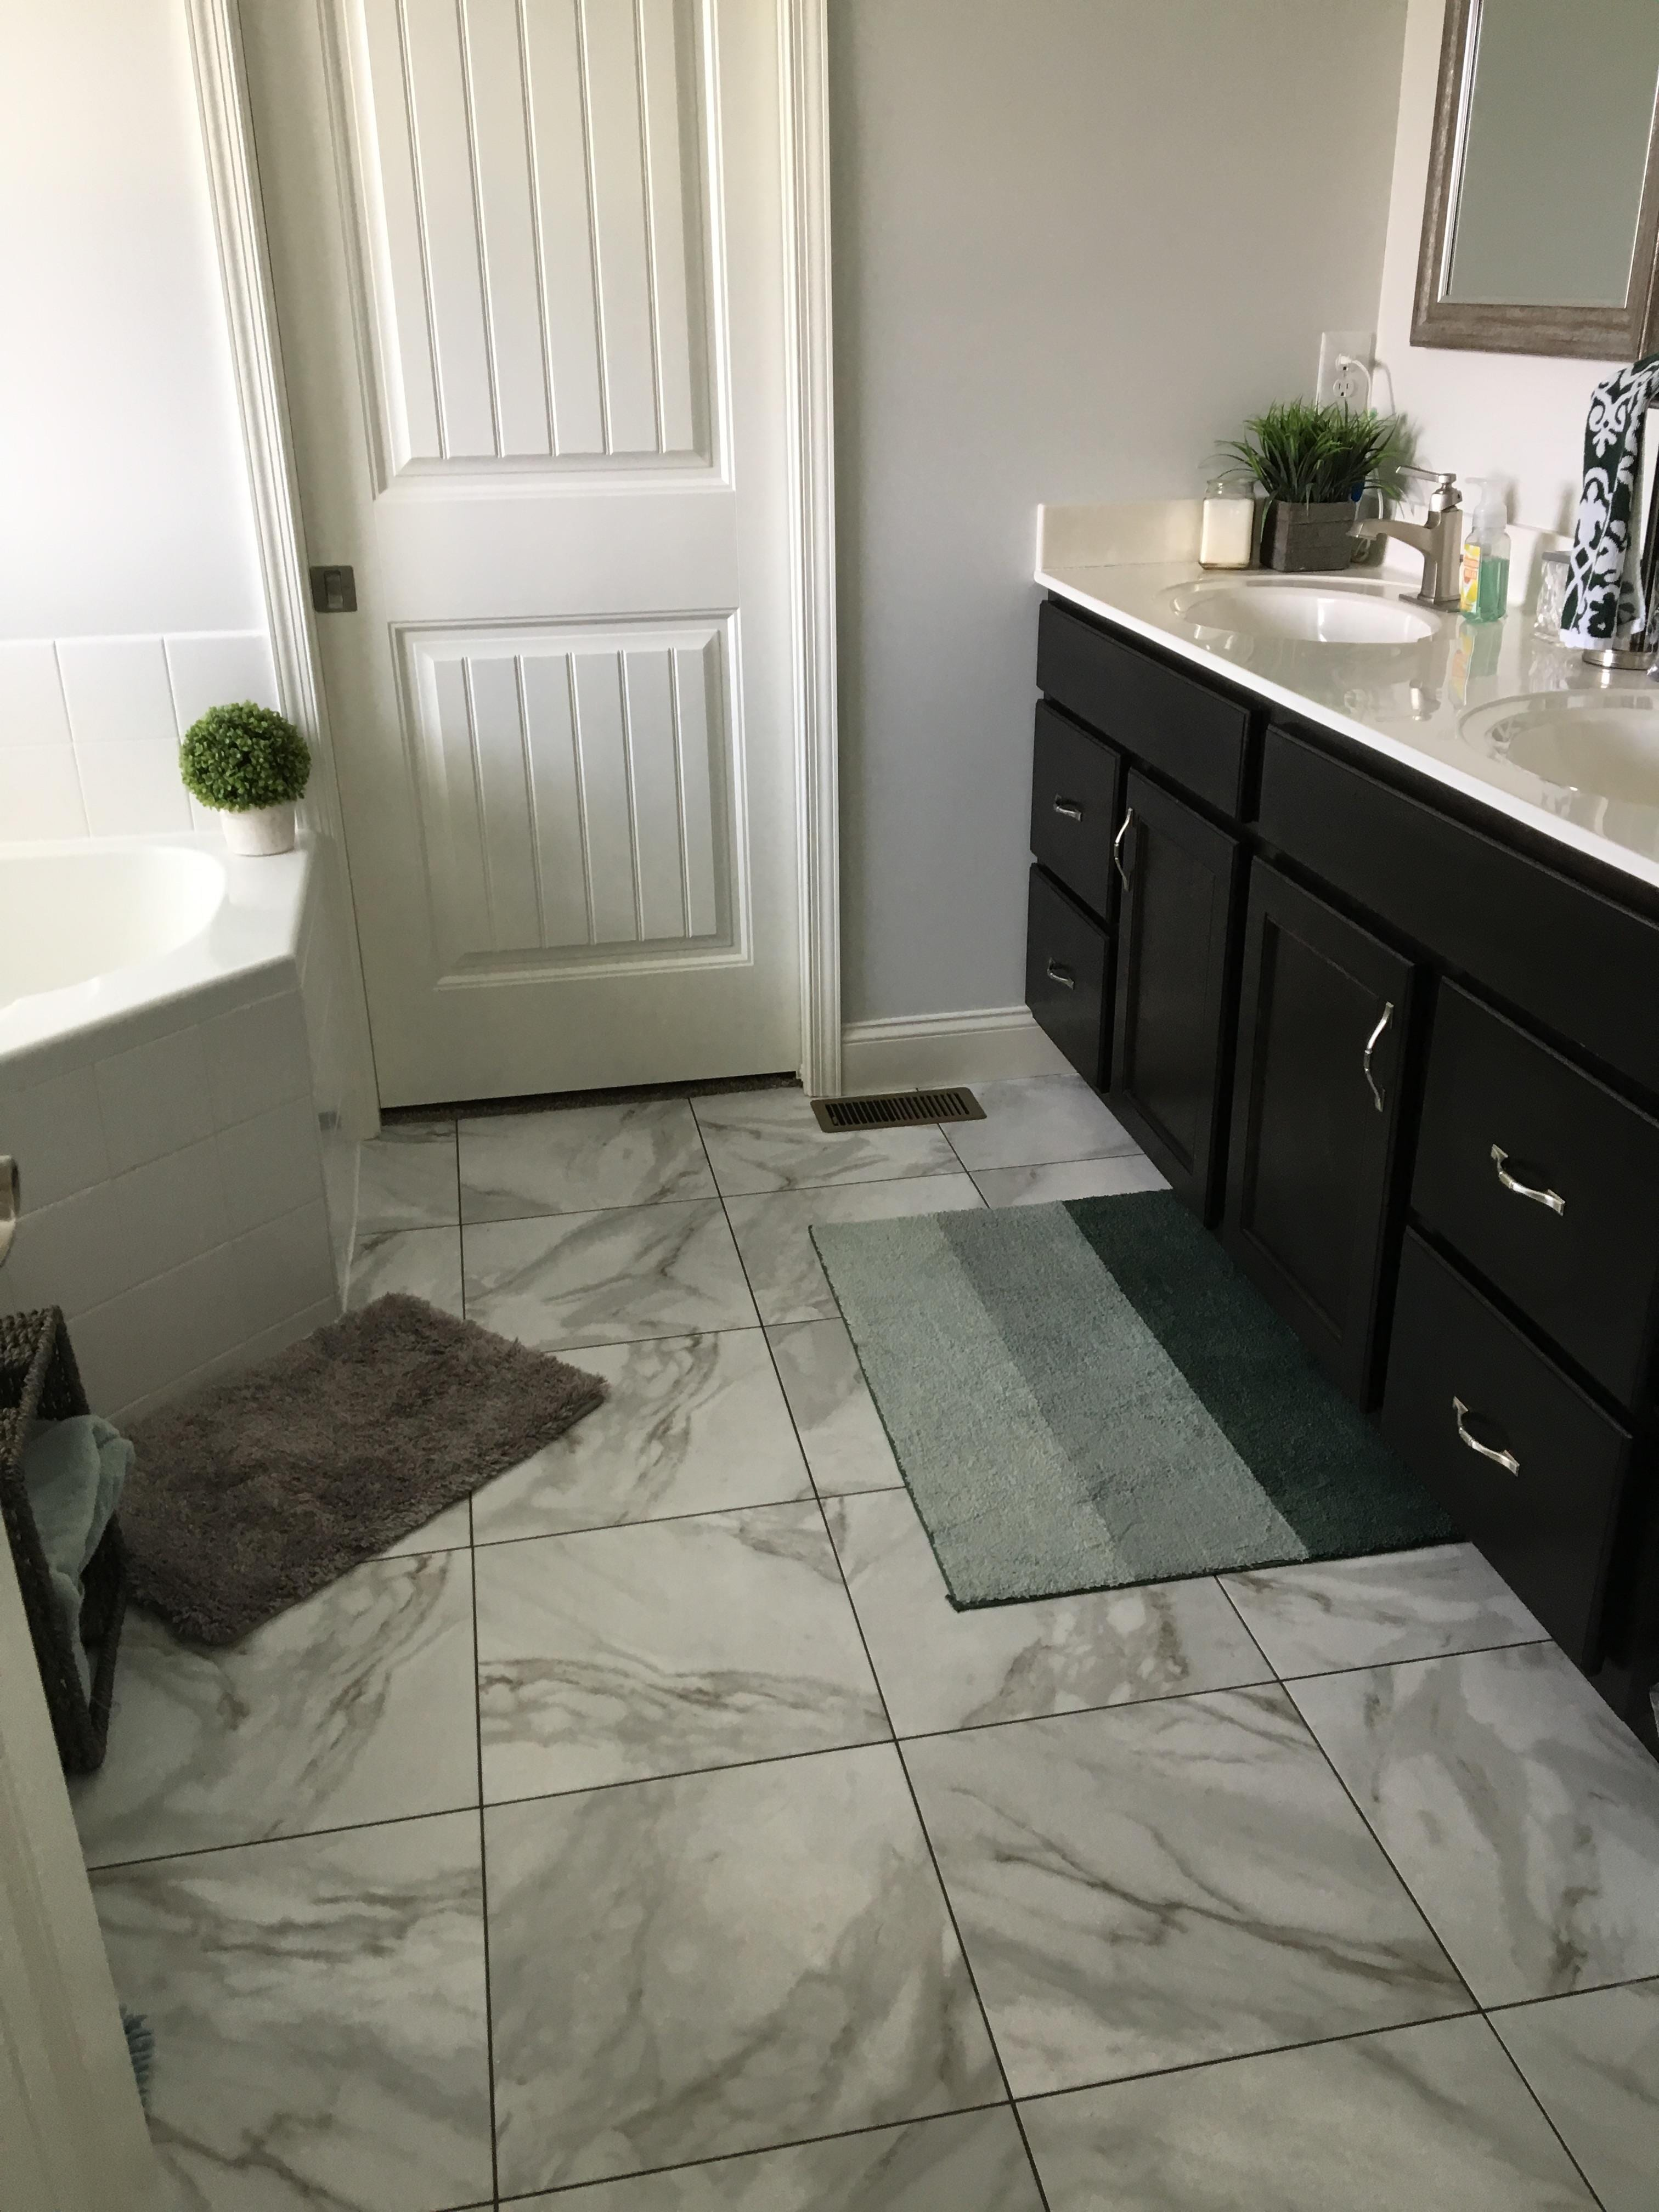 "Bathroom Floor: Luxury Vinyl Tile Armstorng Alterna Reserve Rossini Marble 16""x16"" color is Gray Mist with shale grout"